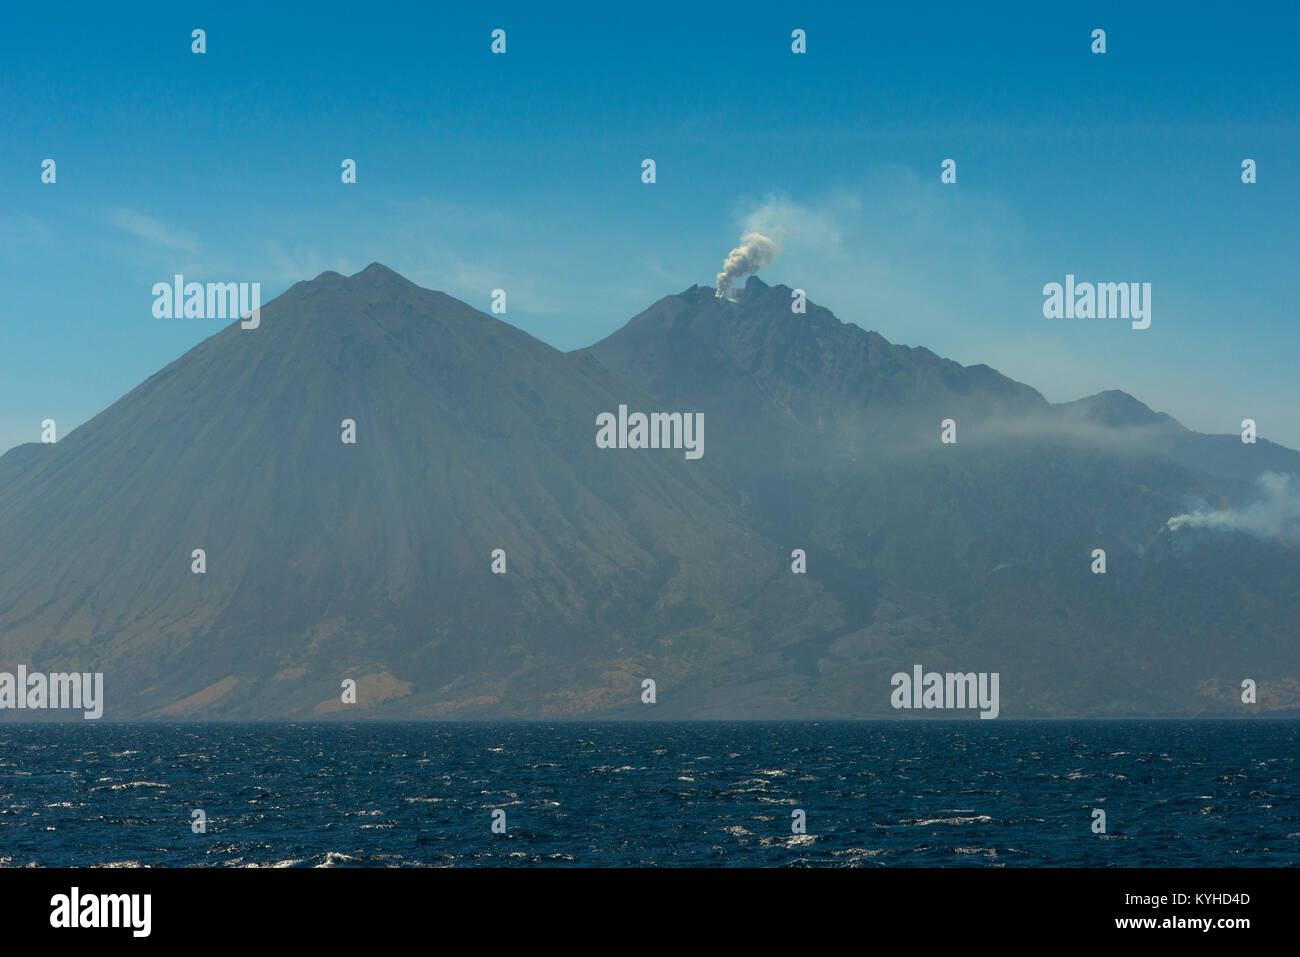 A view of the volcano peaks and a small eruption of the active volcano Sangeang Api (Gunung Api) off the northeast - Stock Image